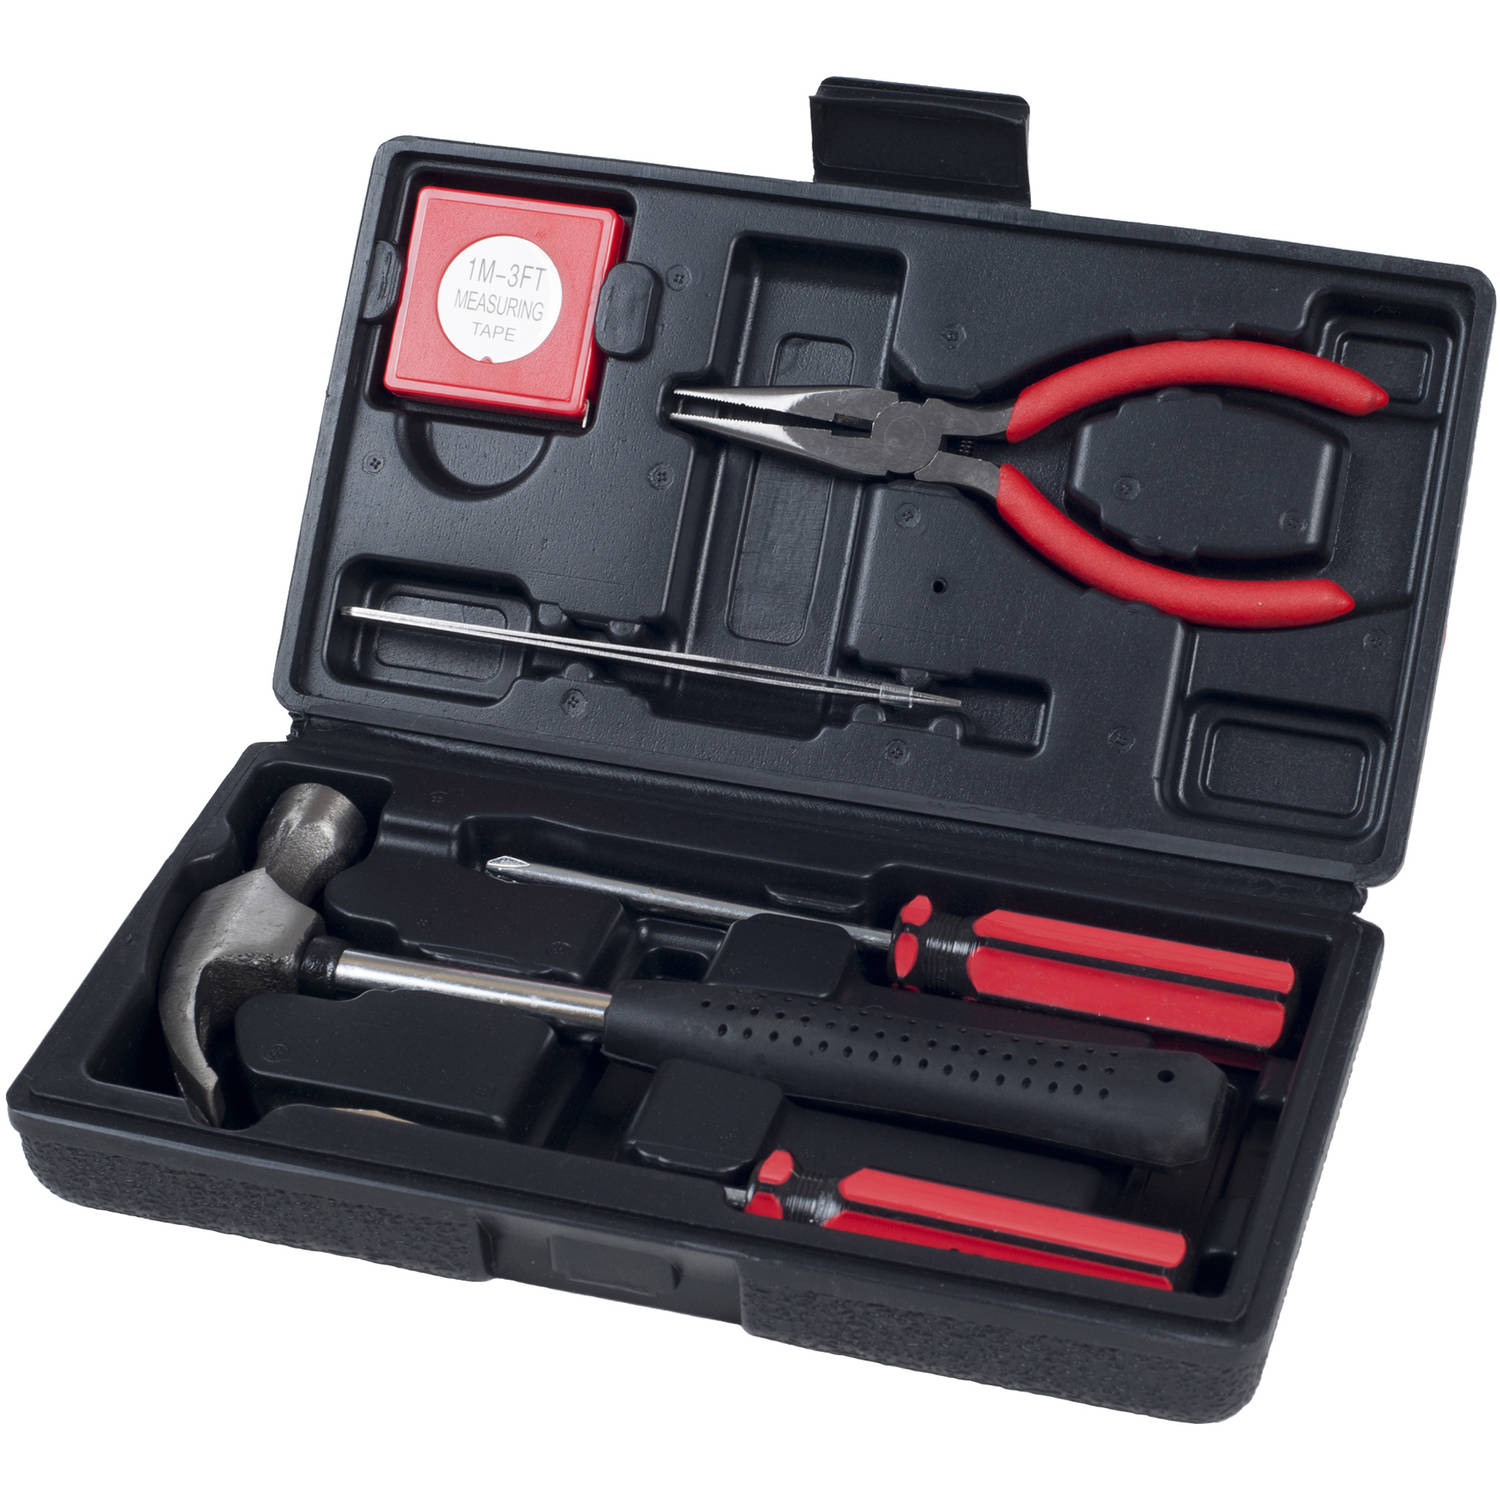 Stalwart 7-Piece Tool Kit, Household, Car and Office